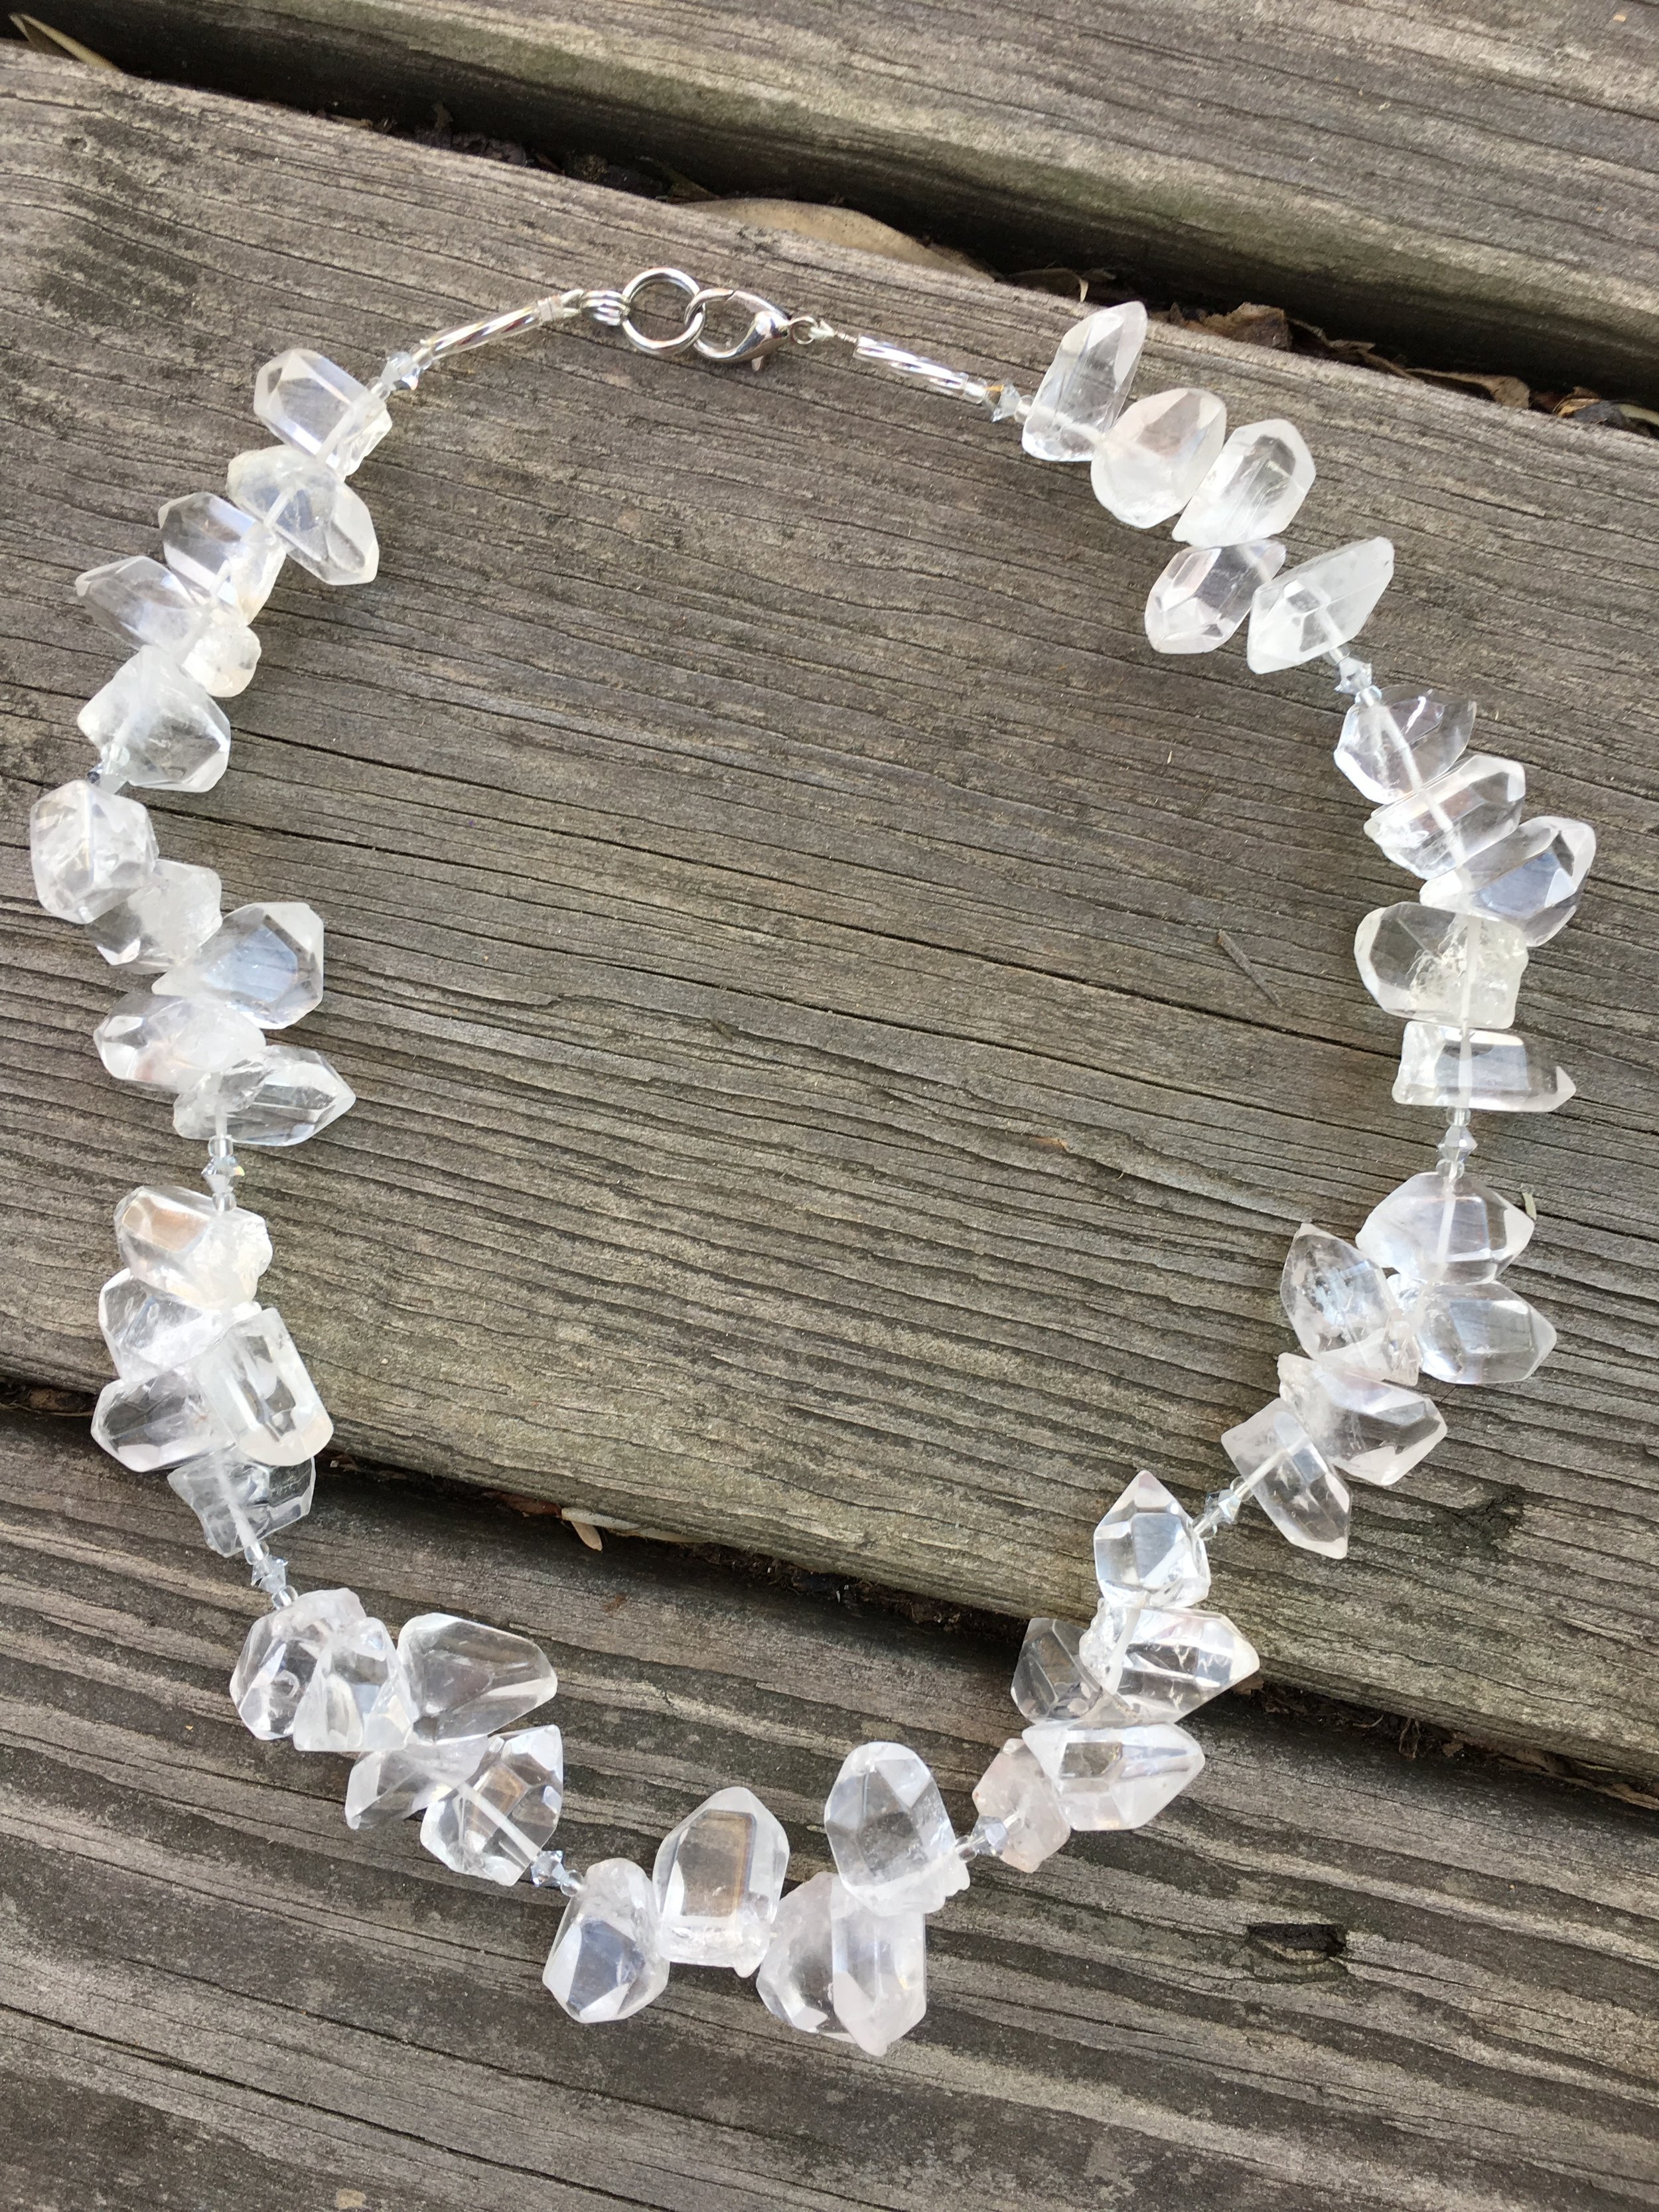 clear quartz necklace  Natural crystal points, glass beads, sterling silver clasp. 18 in. $150